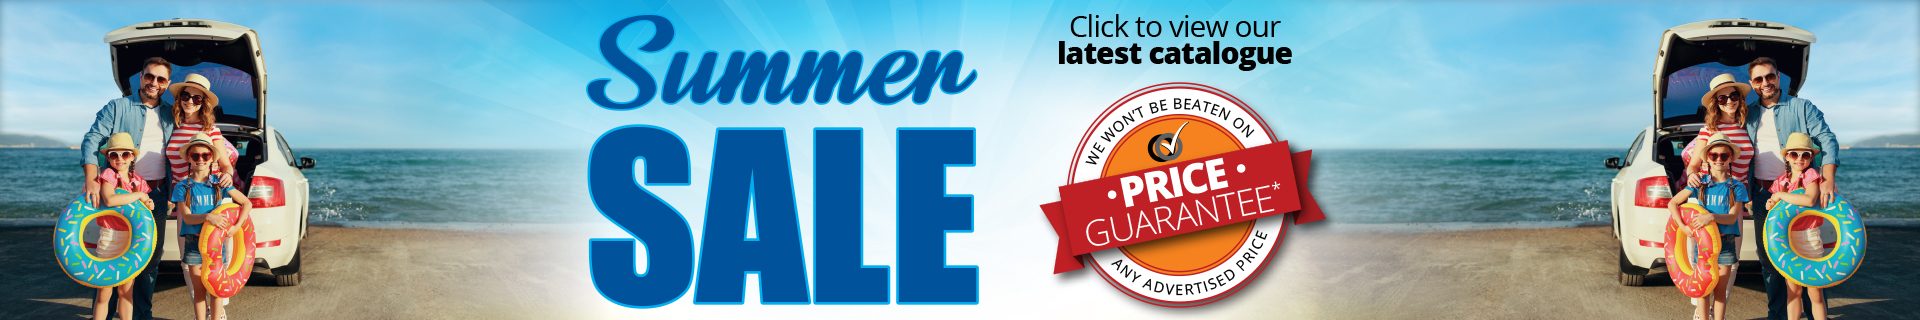 Tyreright Summer Sale Catalogue